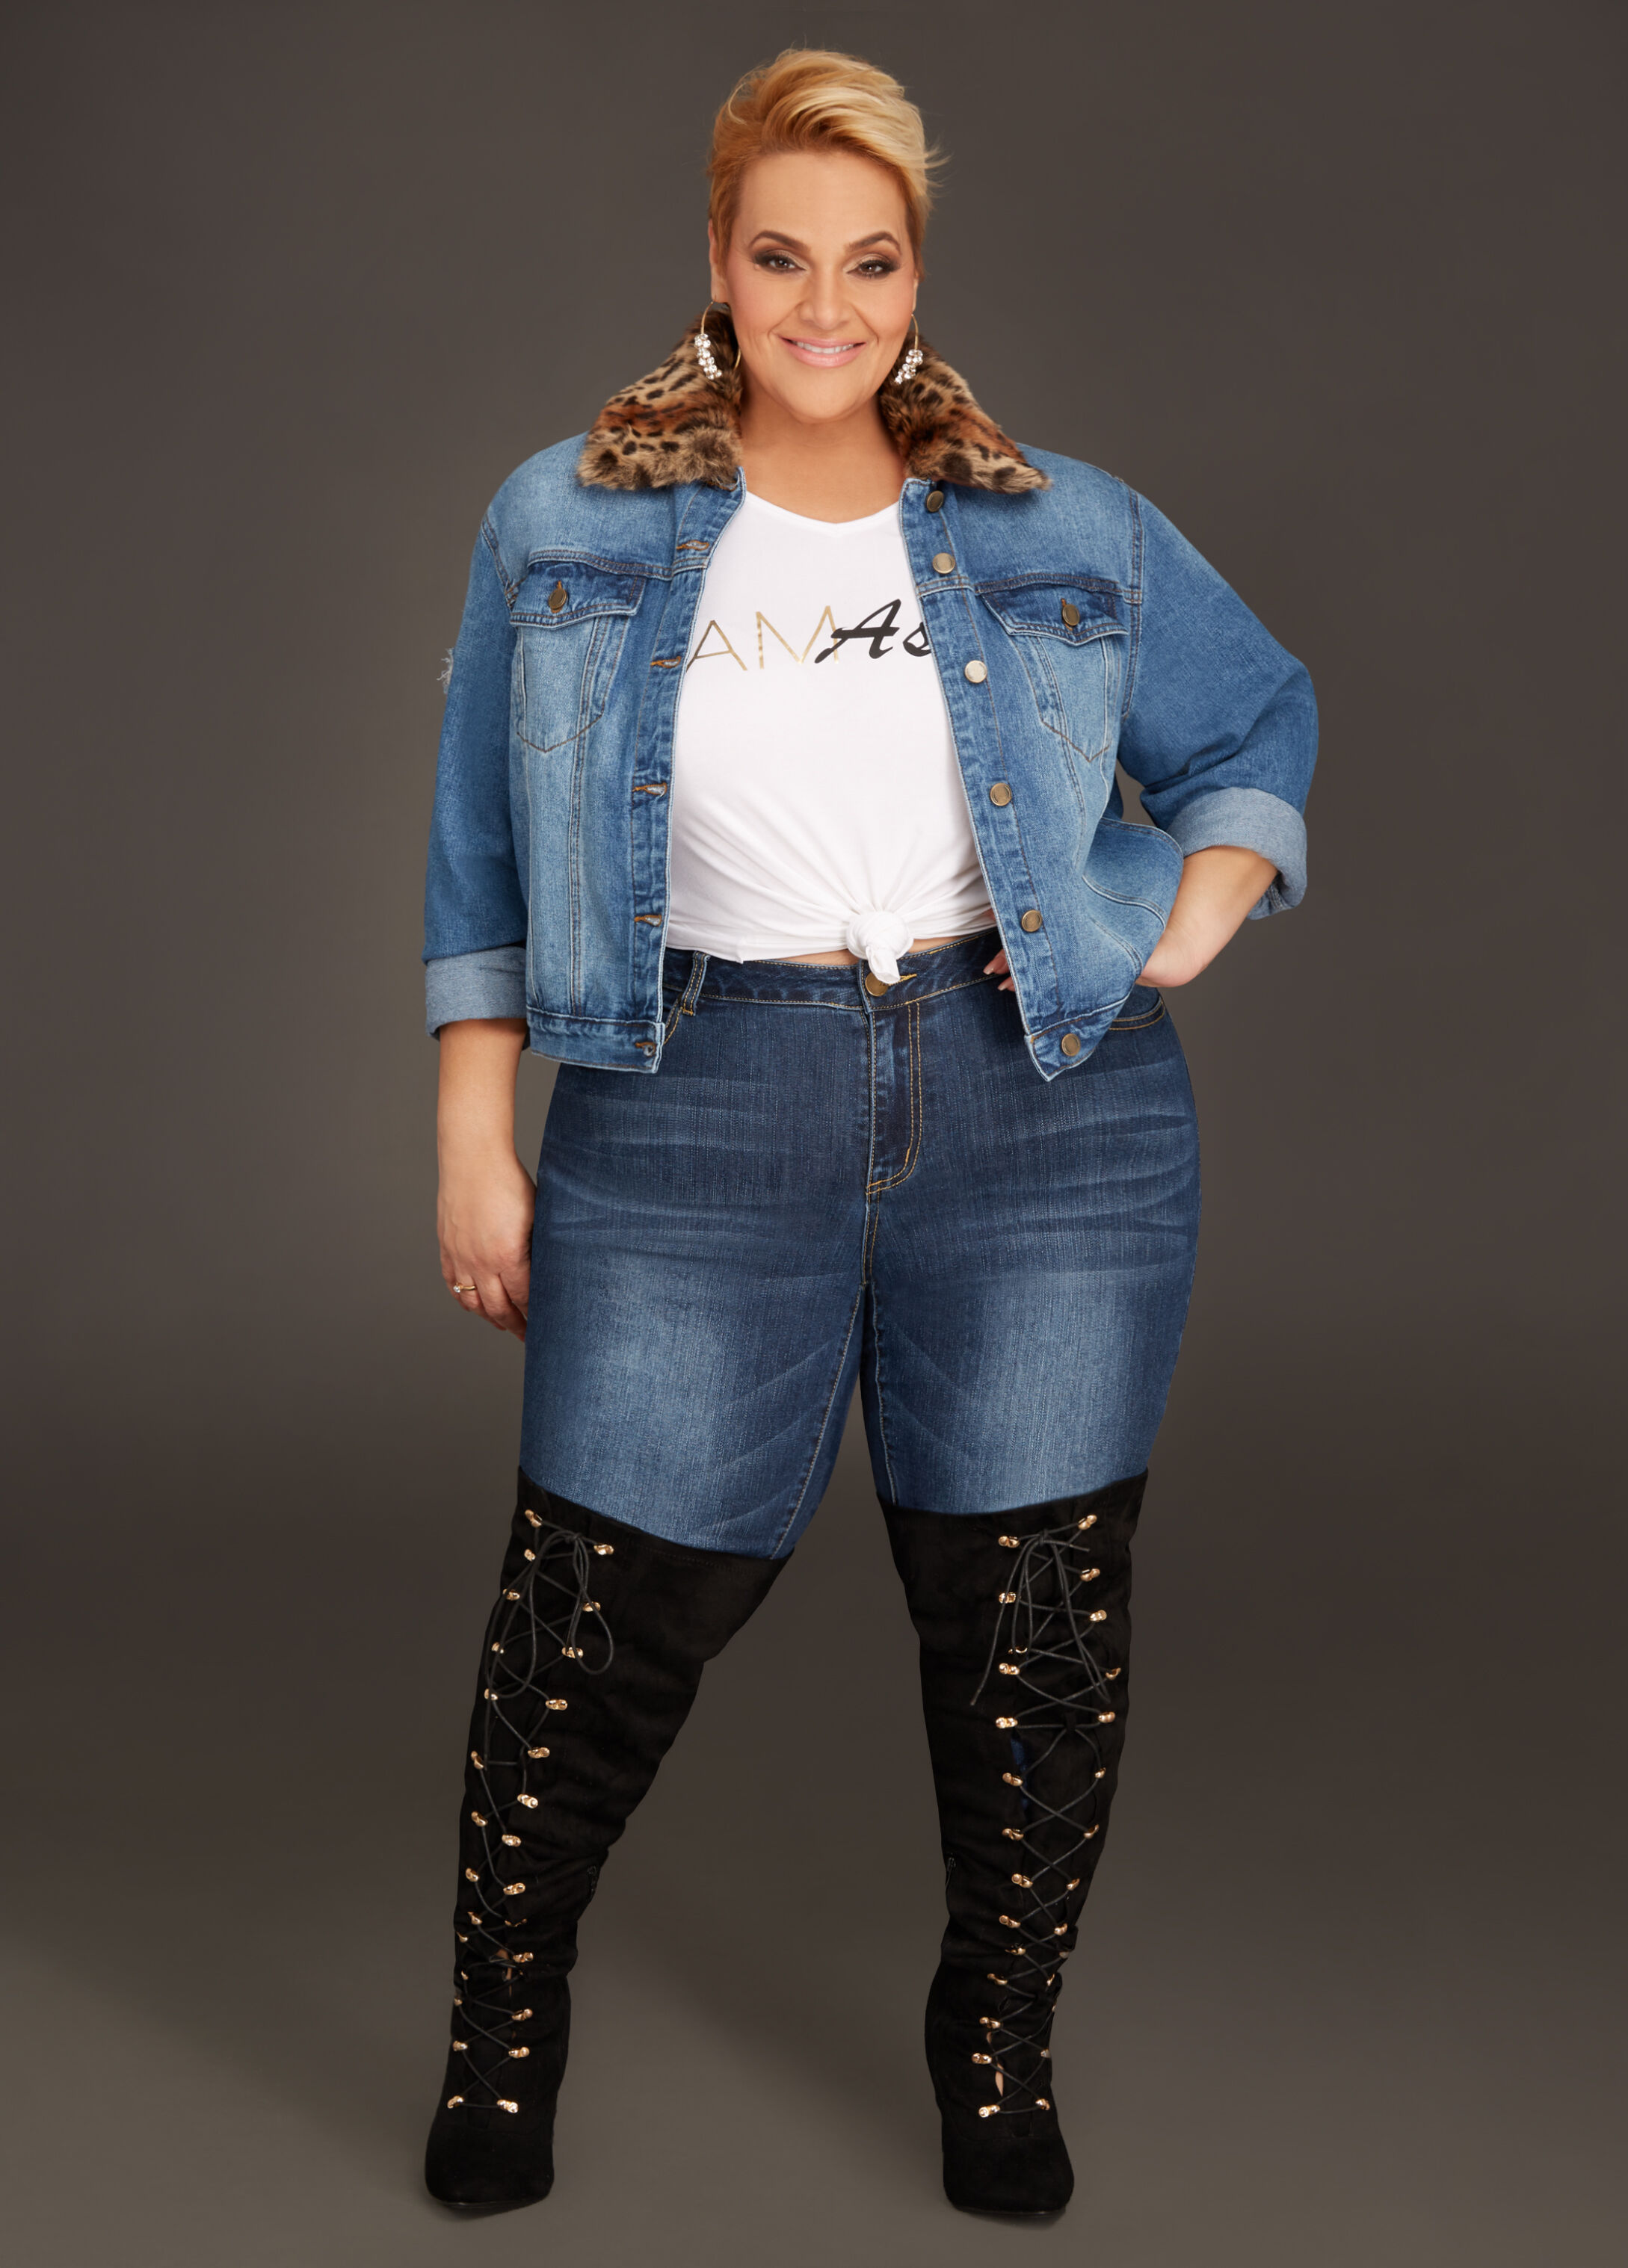 Plus Size Outfits for Women Sizes 12 to 32 | AshleyStewart.com